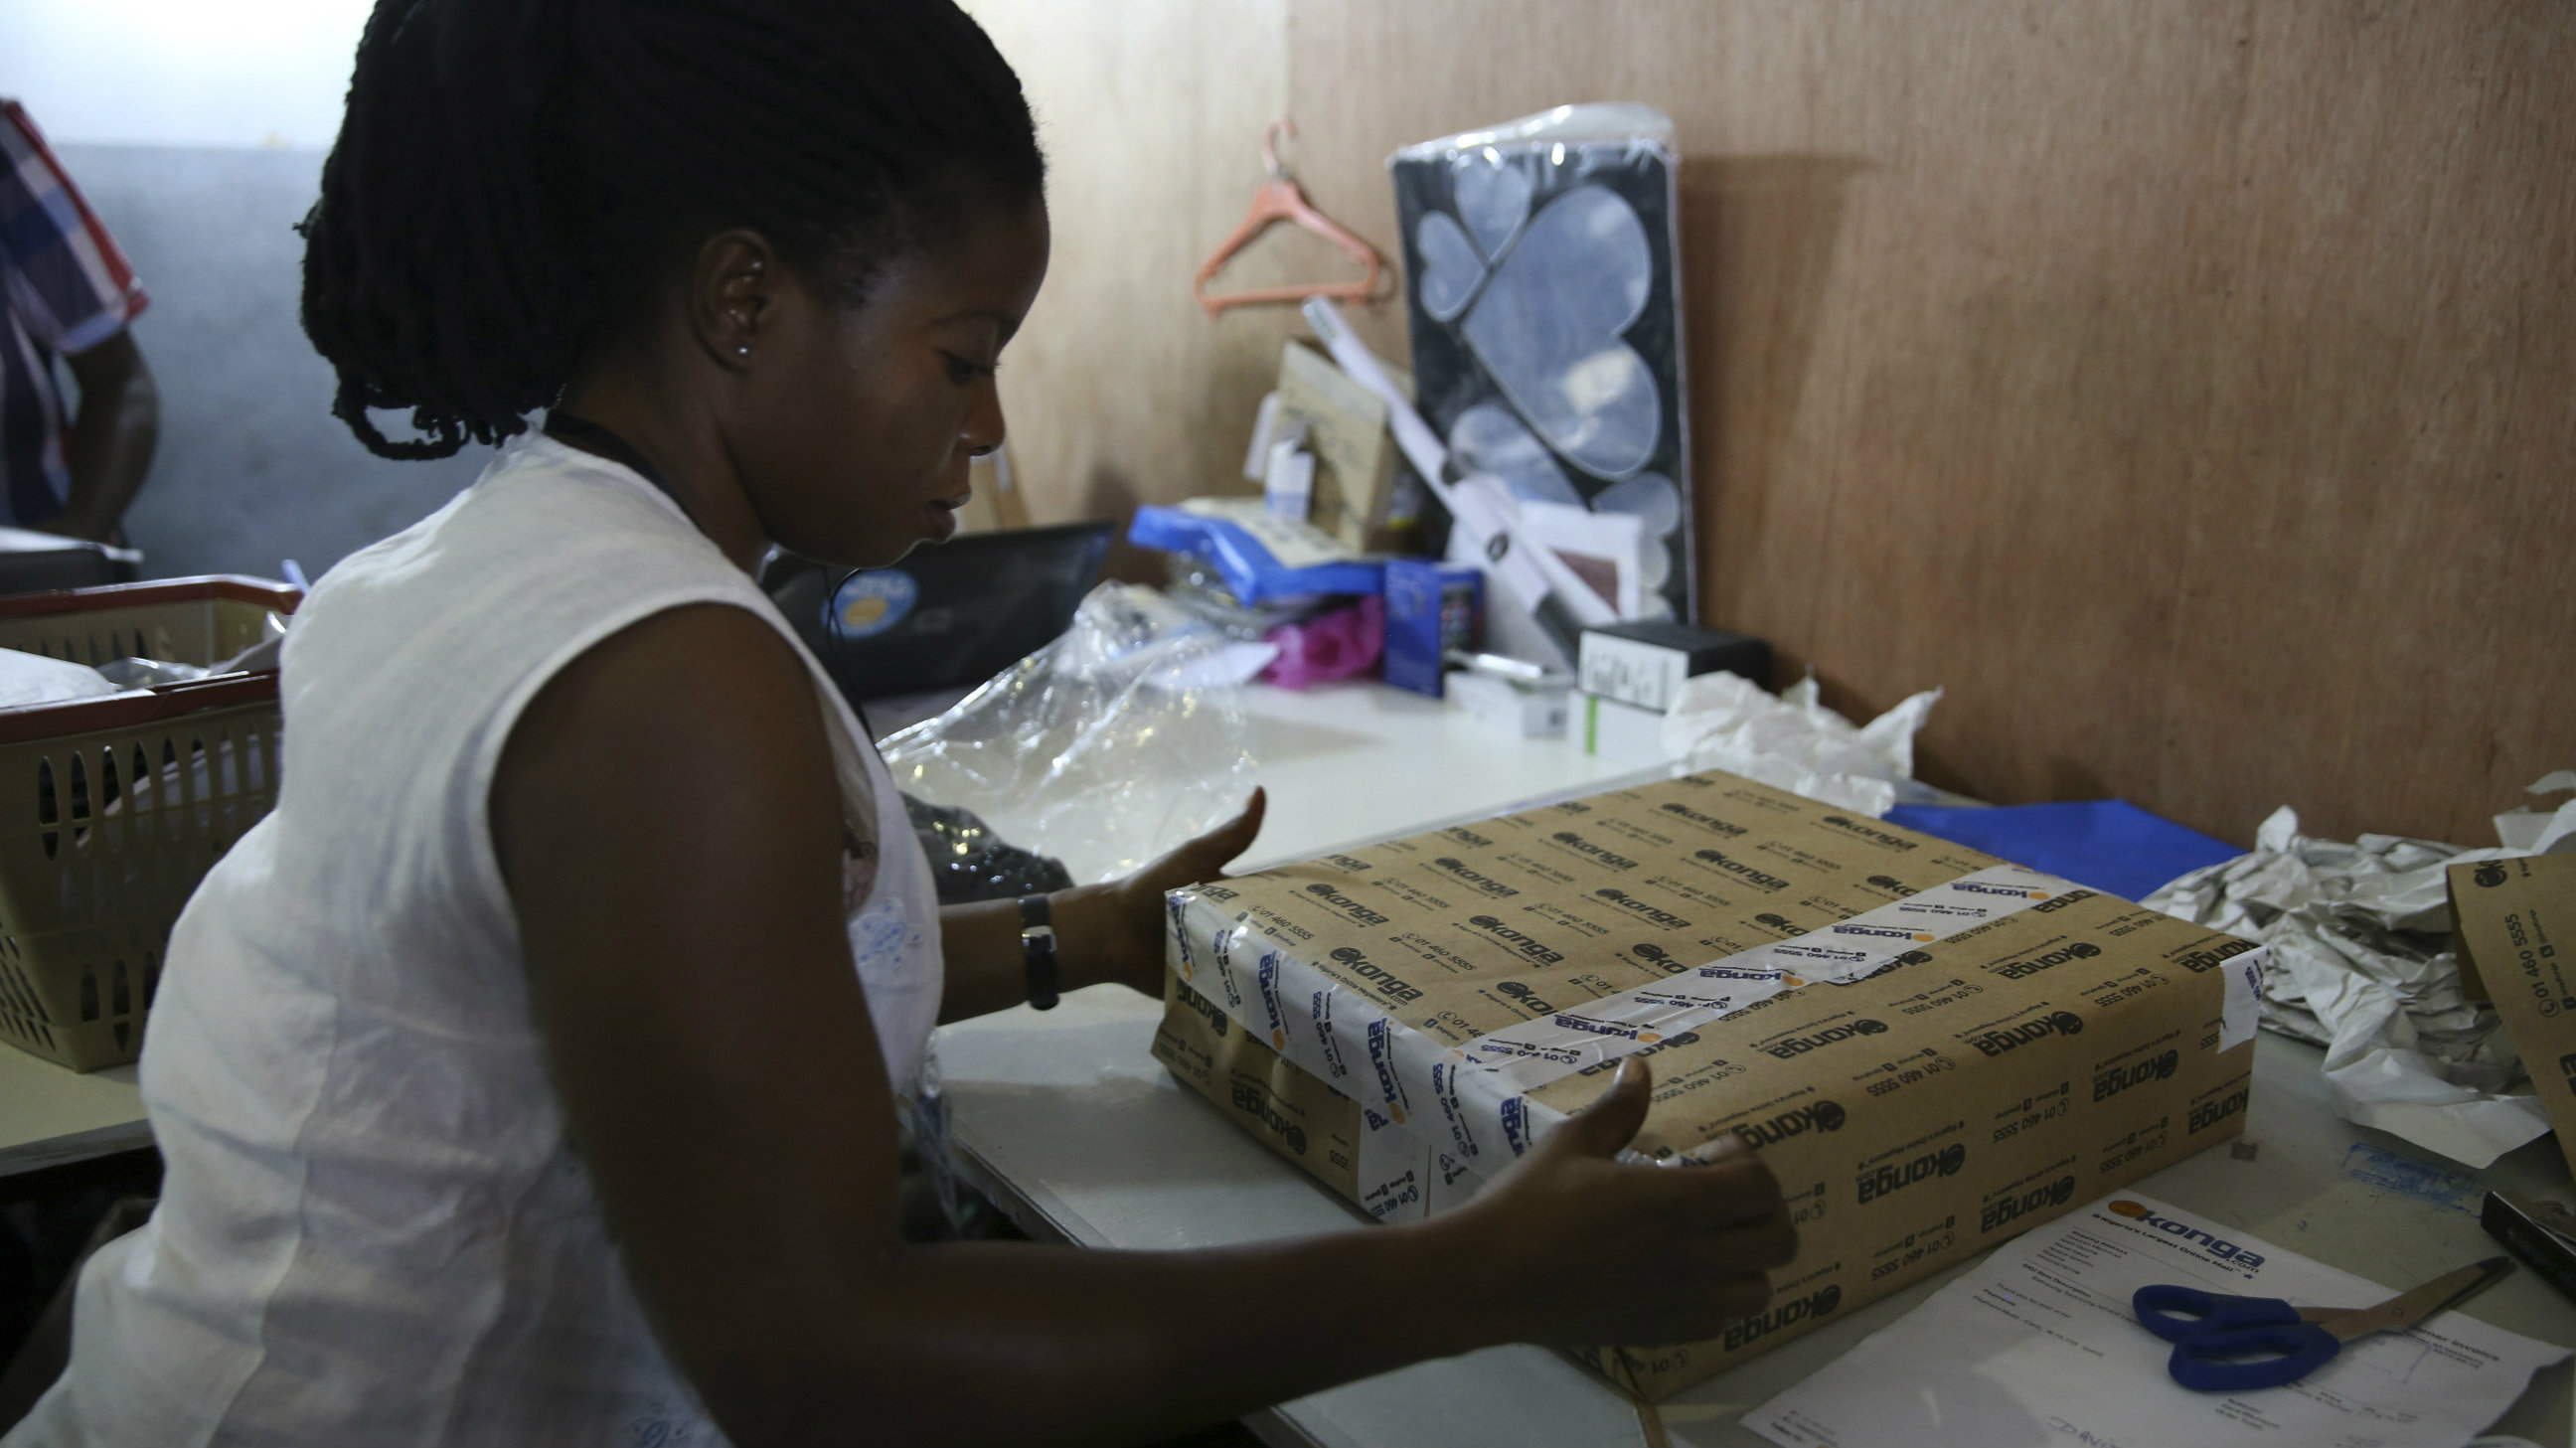 A staff prepares a good for delivery at the warehouse of Konga online shopping company in Ilupeju district in Nigeria's commercial capital Lagos September 13, 2013.